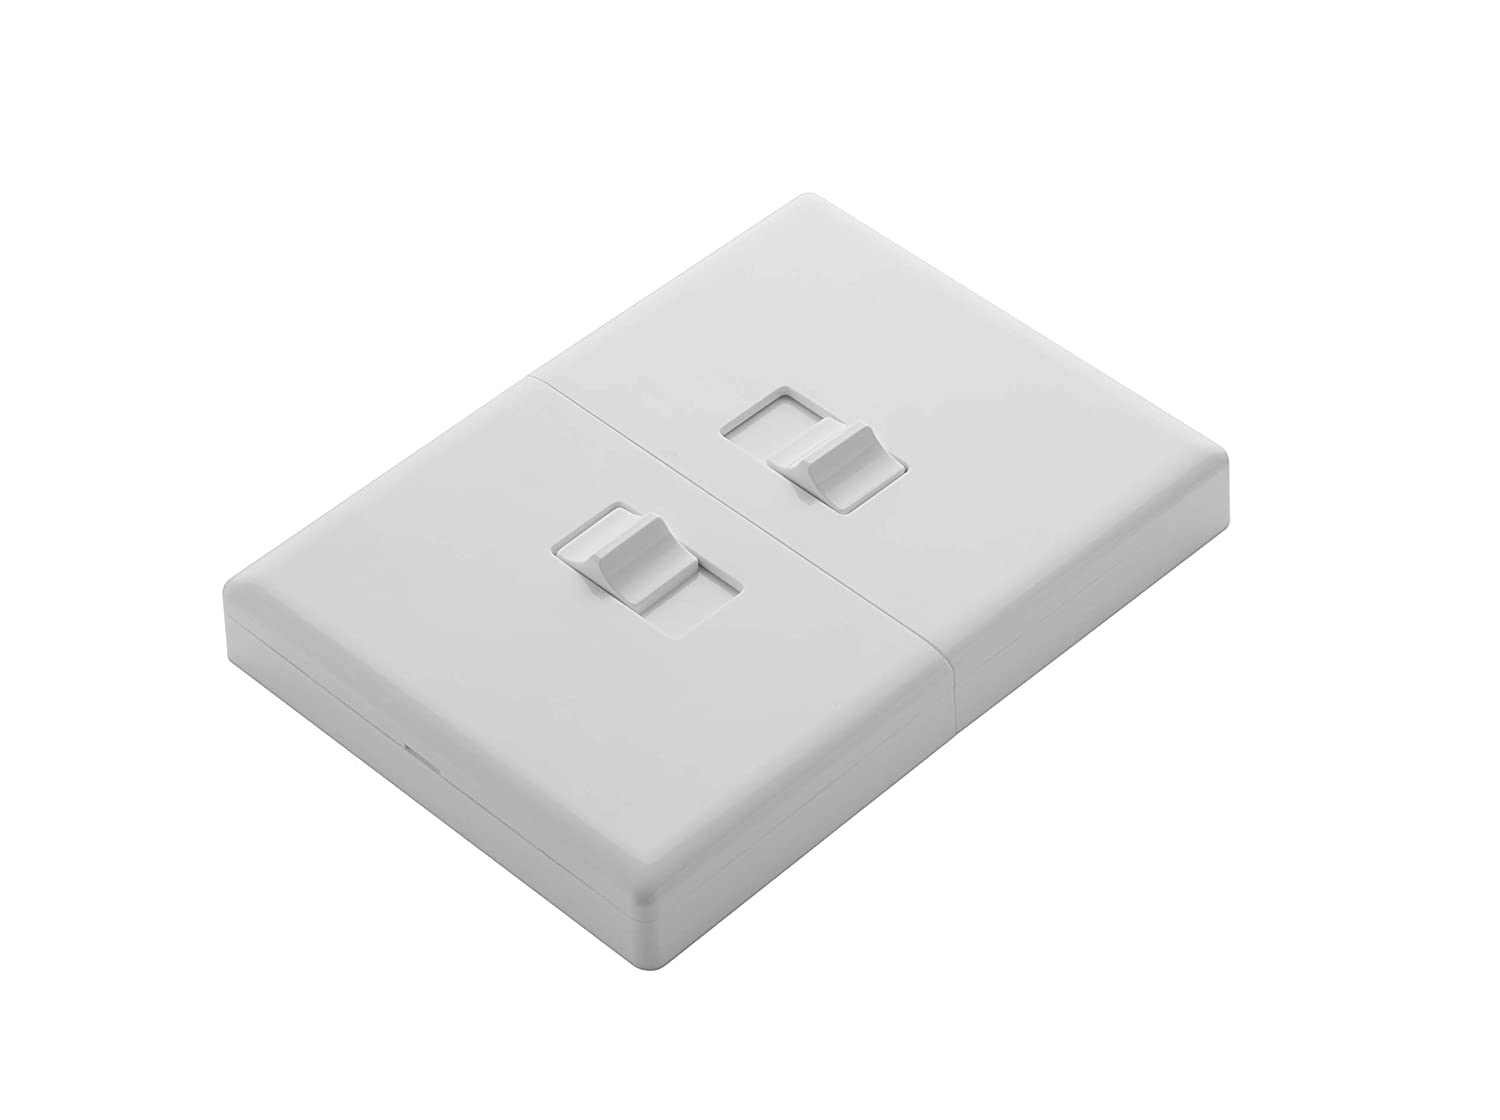 Home Automation Lighting, ZWAVE Plus Smart Switch by Ecolink, Lighting Switch Control, White Dual Toggle Style Light Switch Design (PN - DTLS2-ZWAVE5)